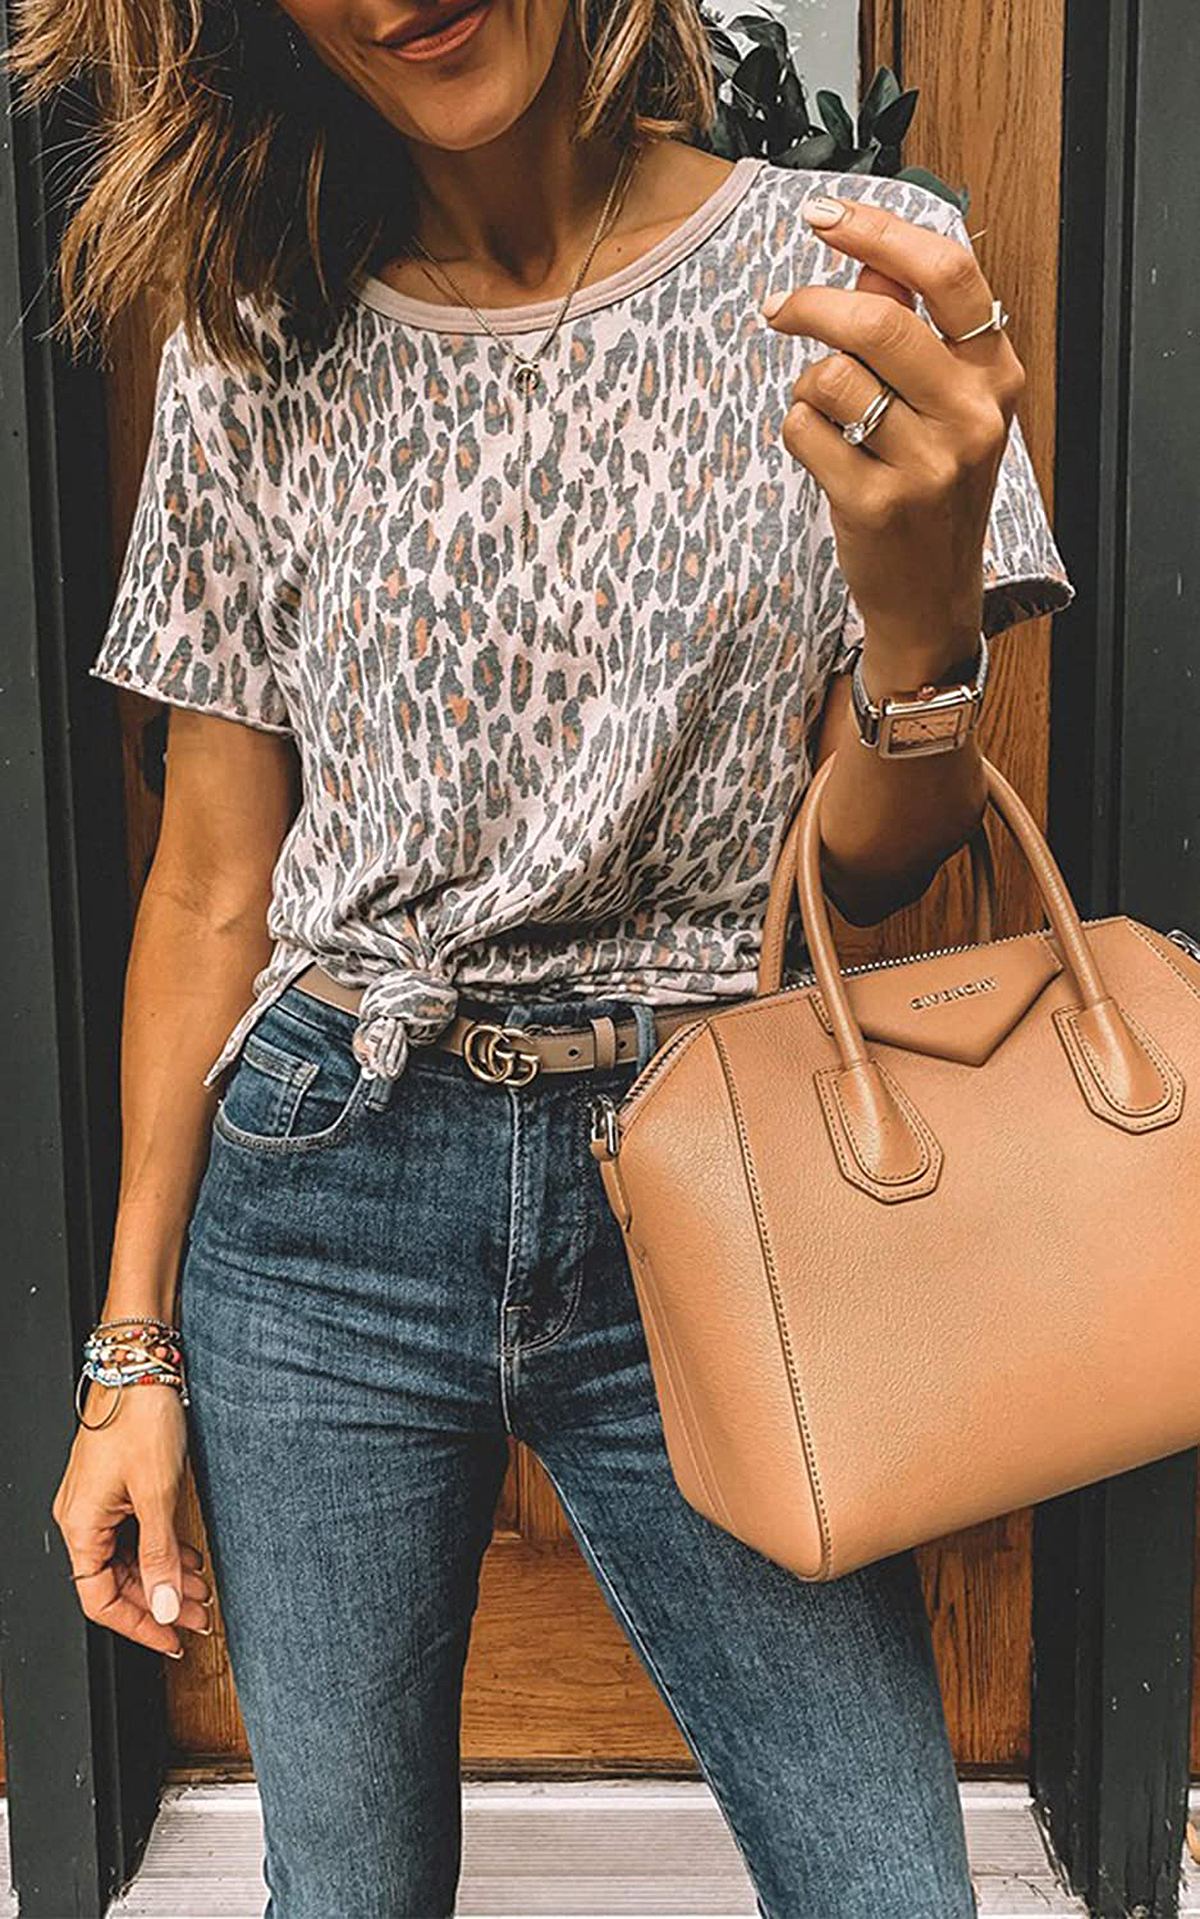 This Leopard-Print Tee Is a Serious Upgrade From Boring Basics